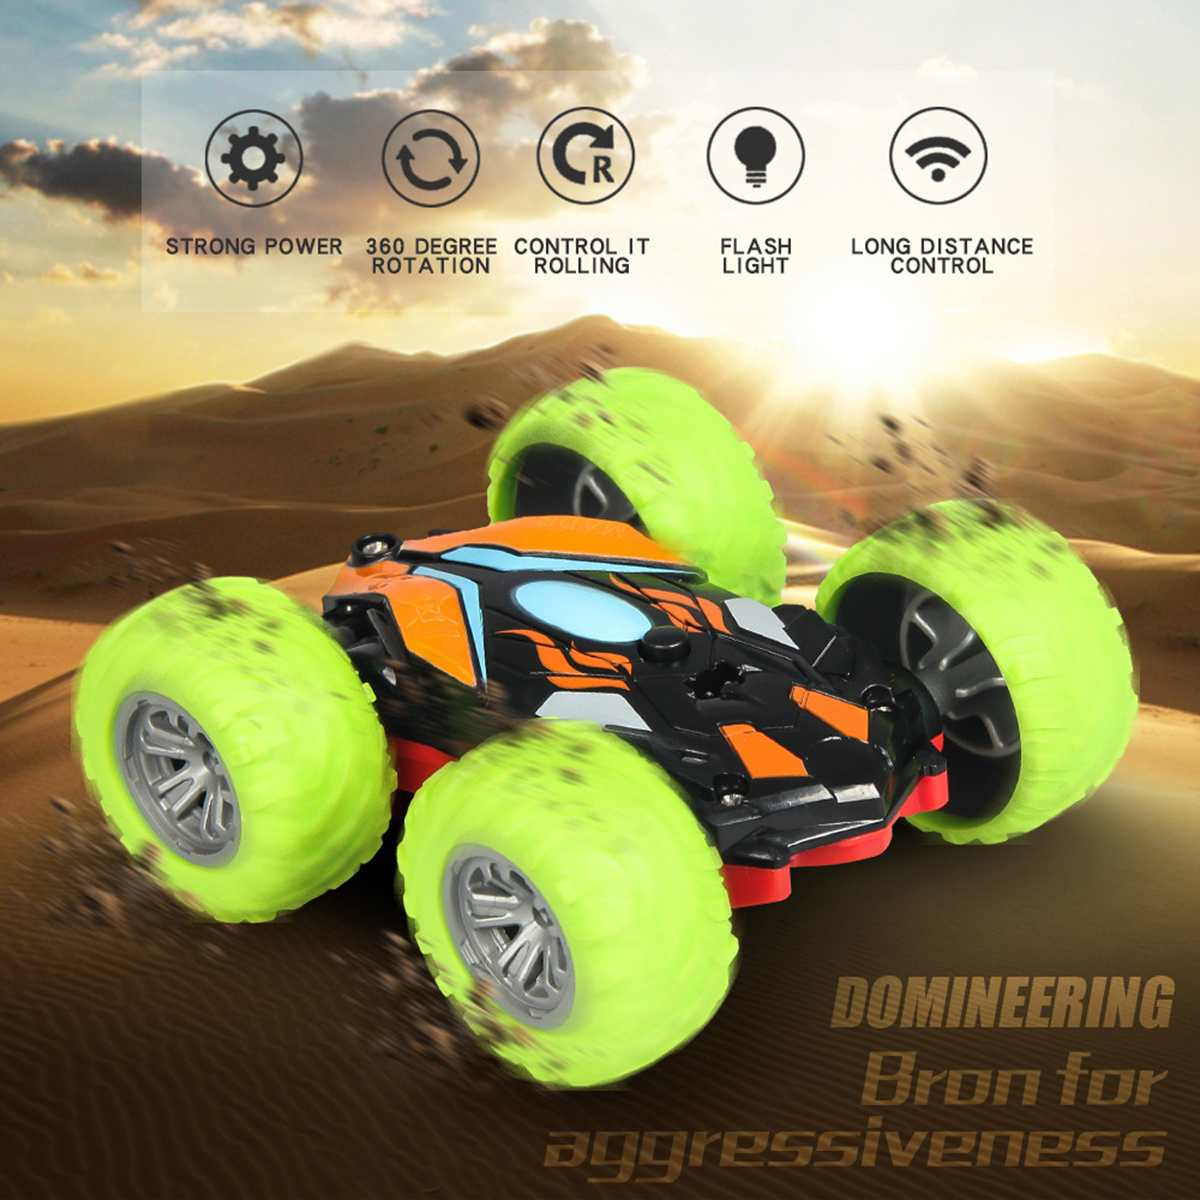 Double Sided 3D Flip Remote Control Car Robot RC Car Toy Drift-Buggy Crawler Battery Operated Stunt Machine Radio Controlled Car